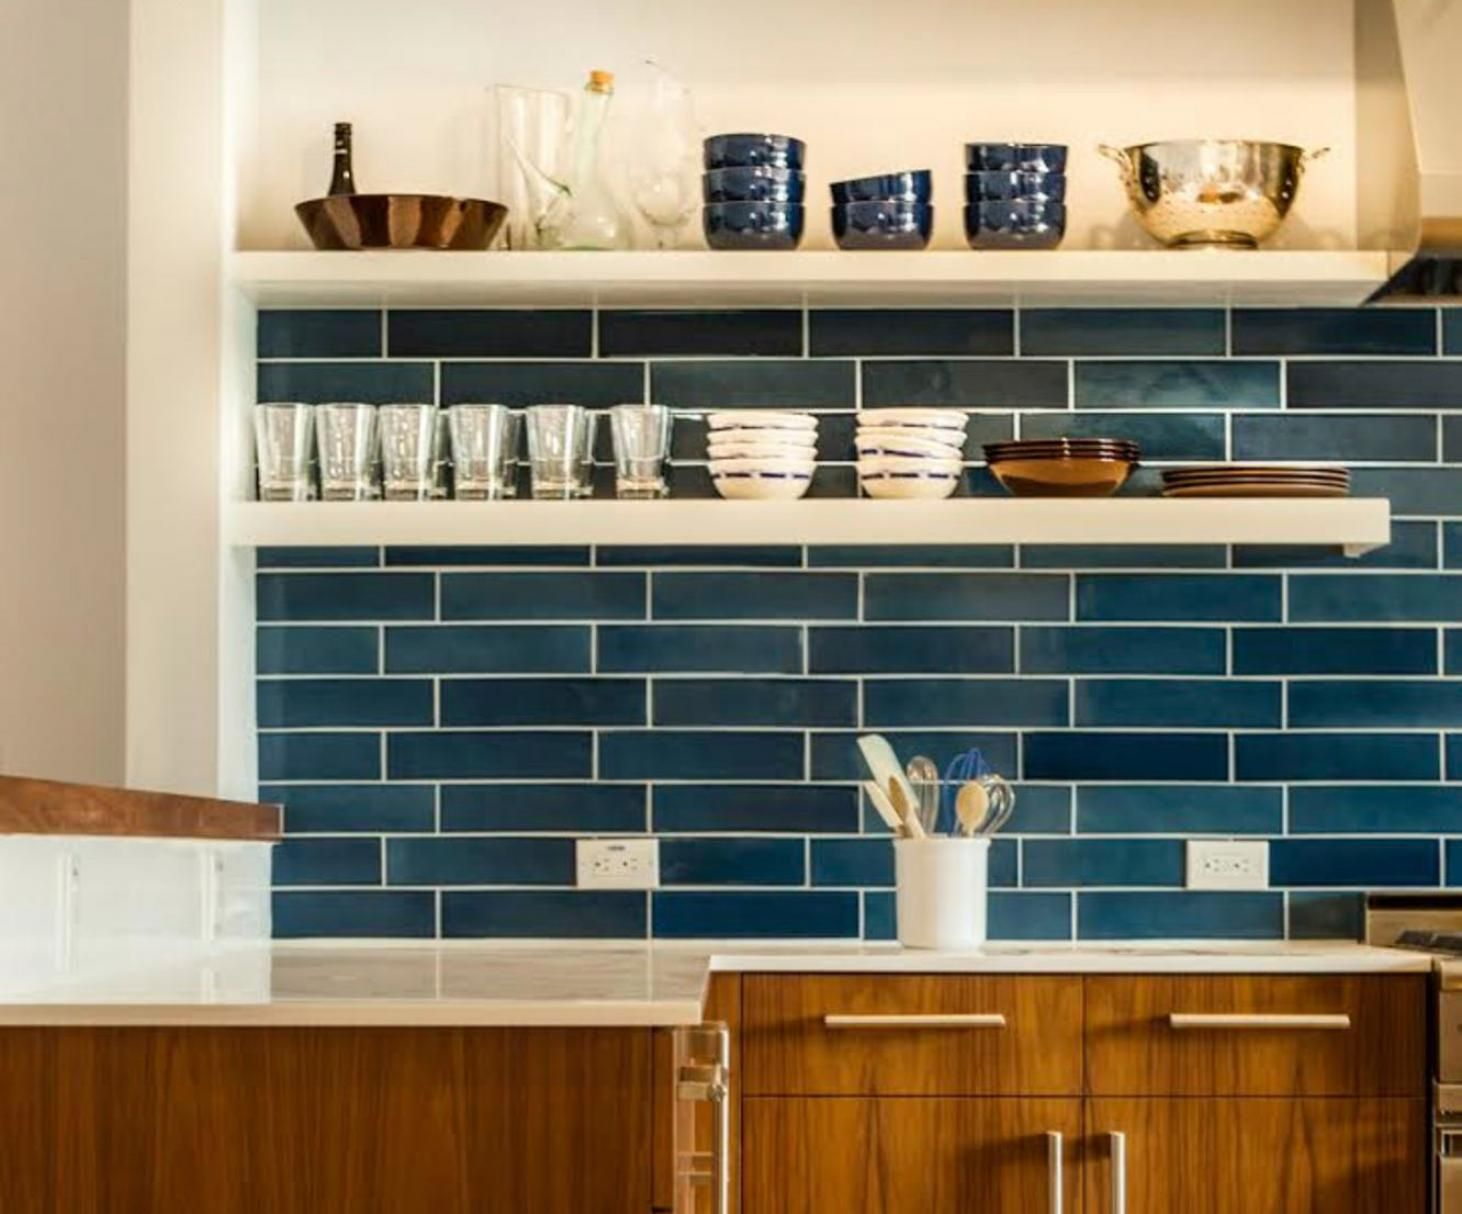 Installation Inspiration - Heath Ceramics | Hollywood Hills Home ...